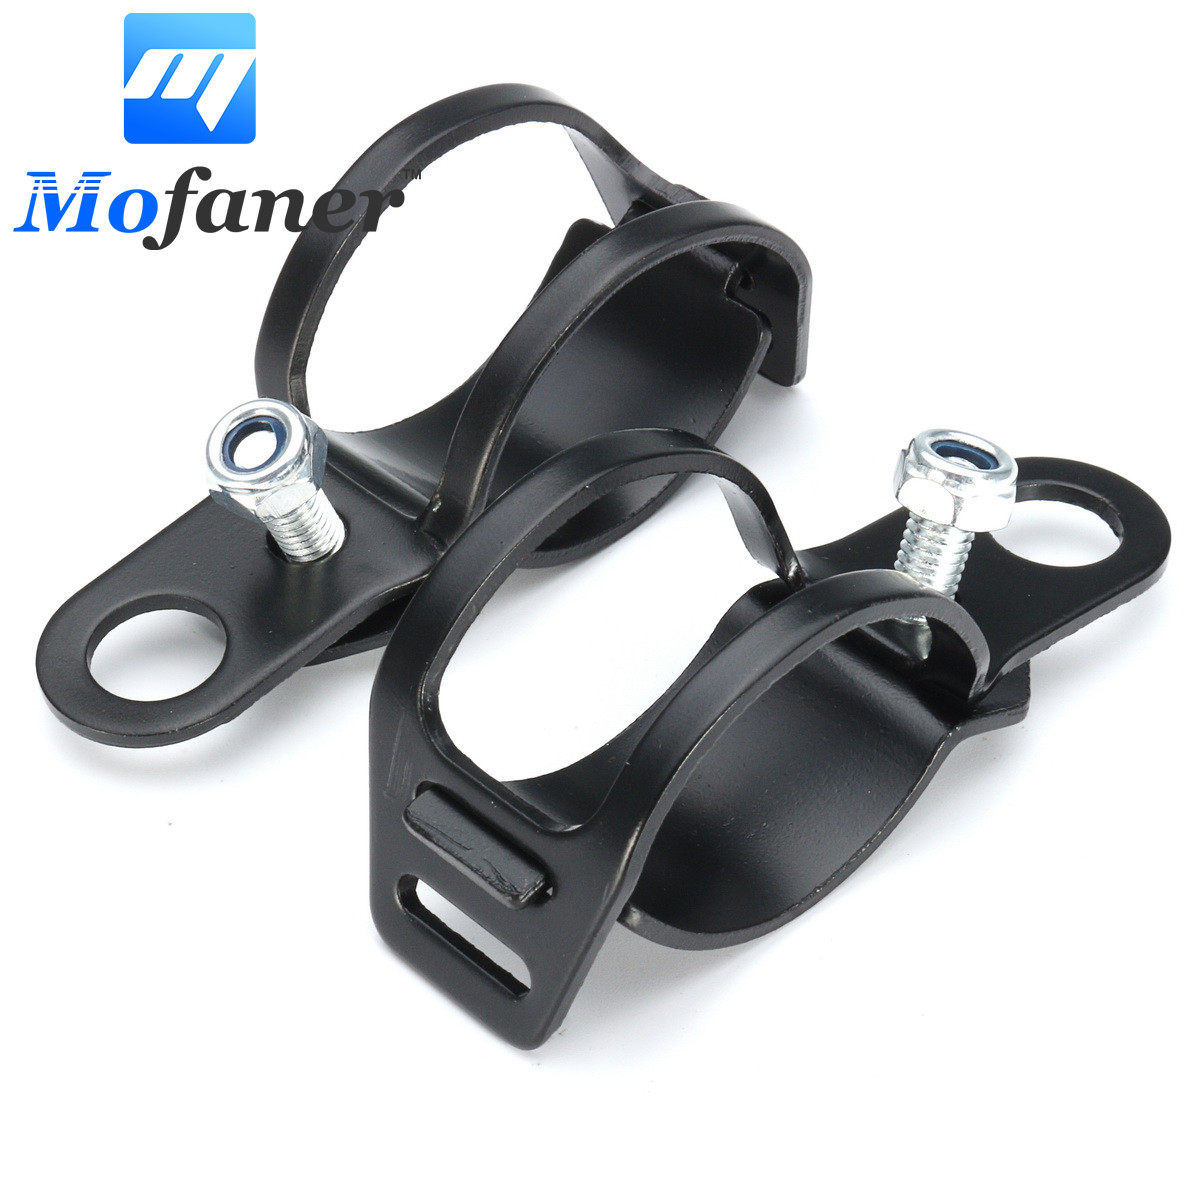 Motorcycle Headlight Bracket Black Front Rear Steel Turn Signal Holder Fork Clamps Shock Bracket Cafe Racer купить недорого в Москве